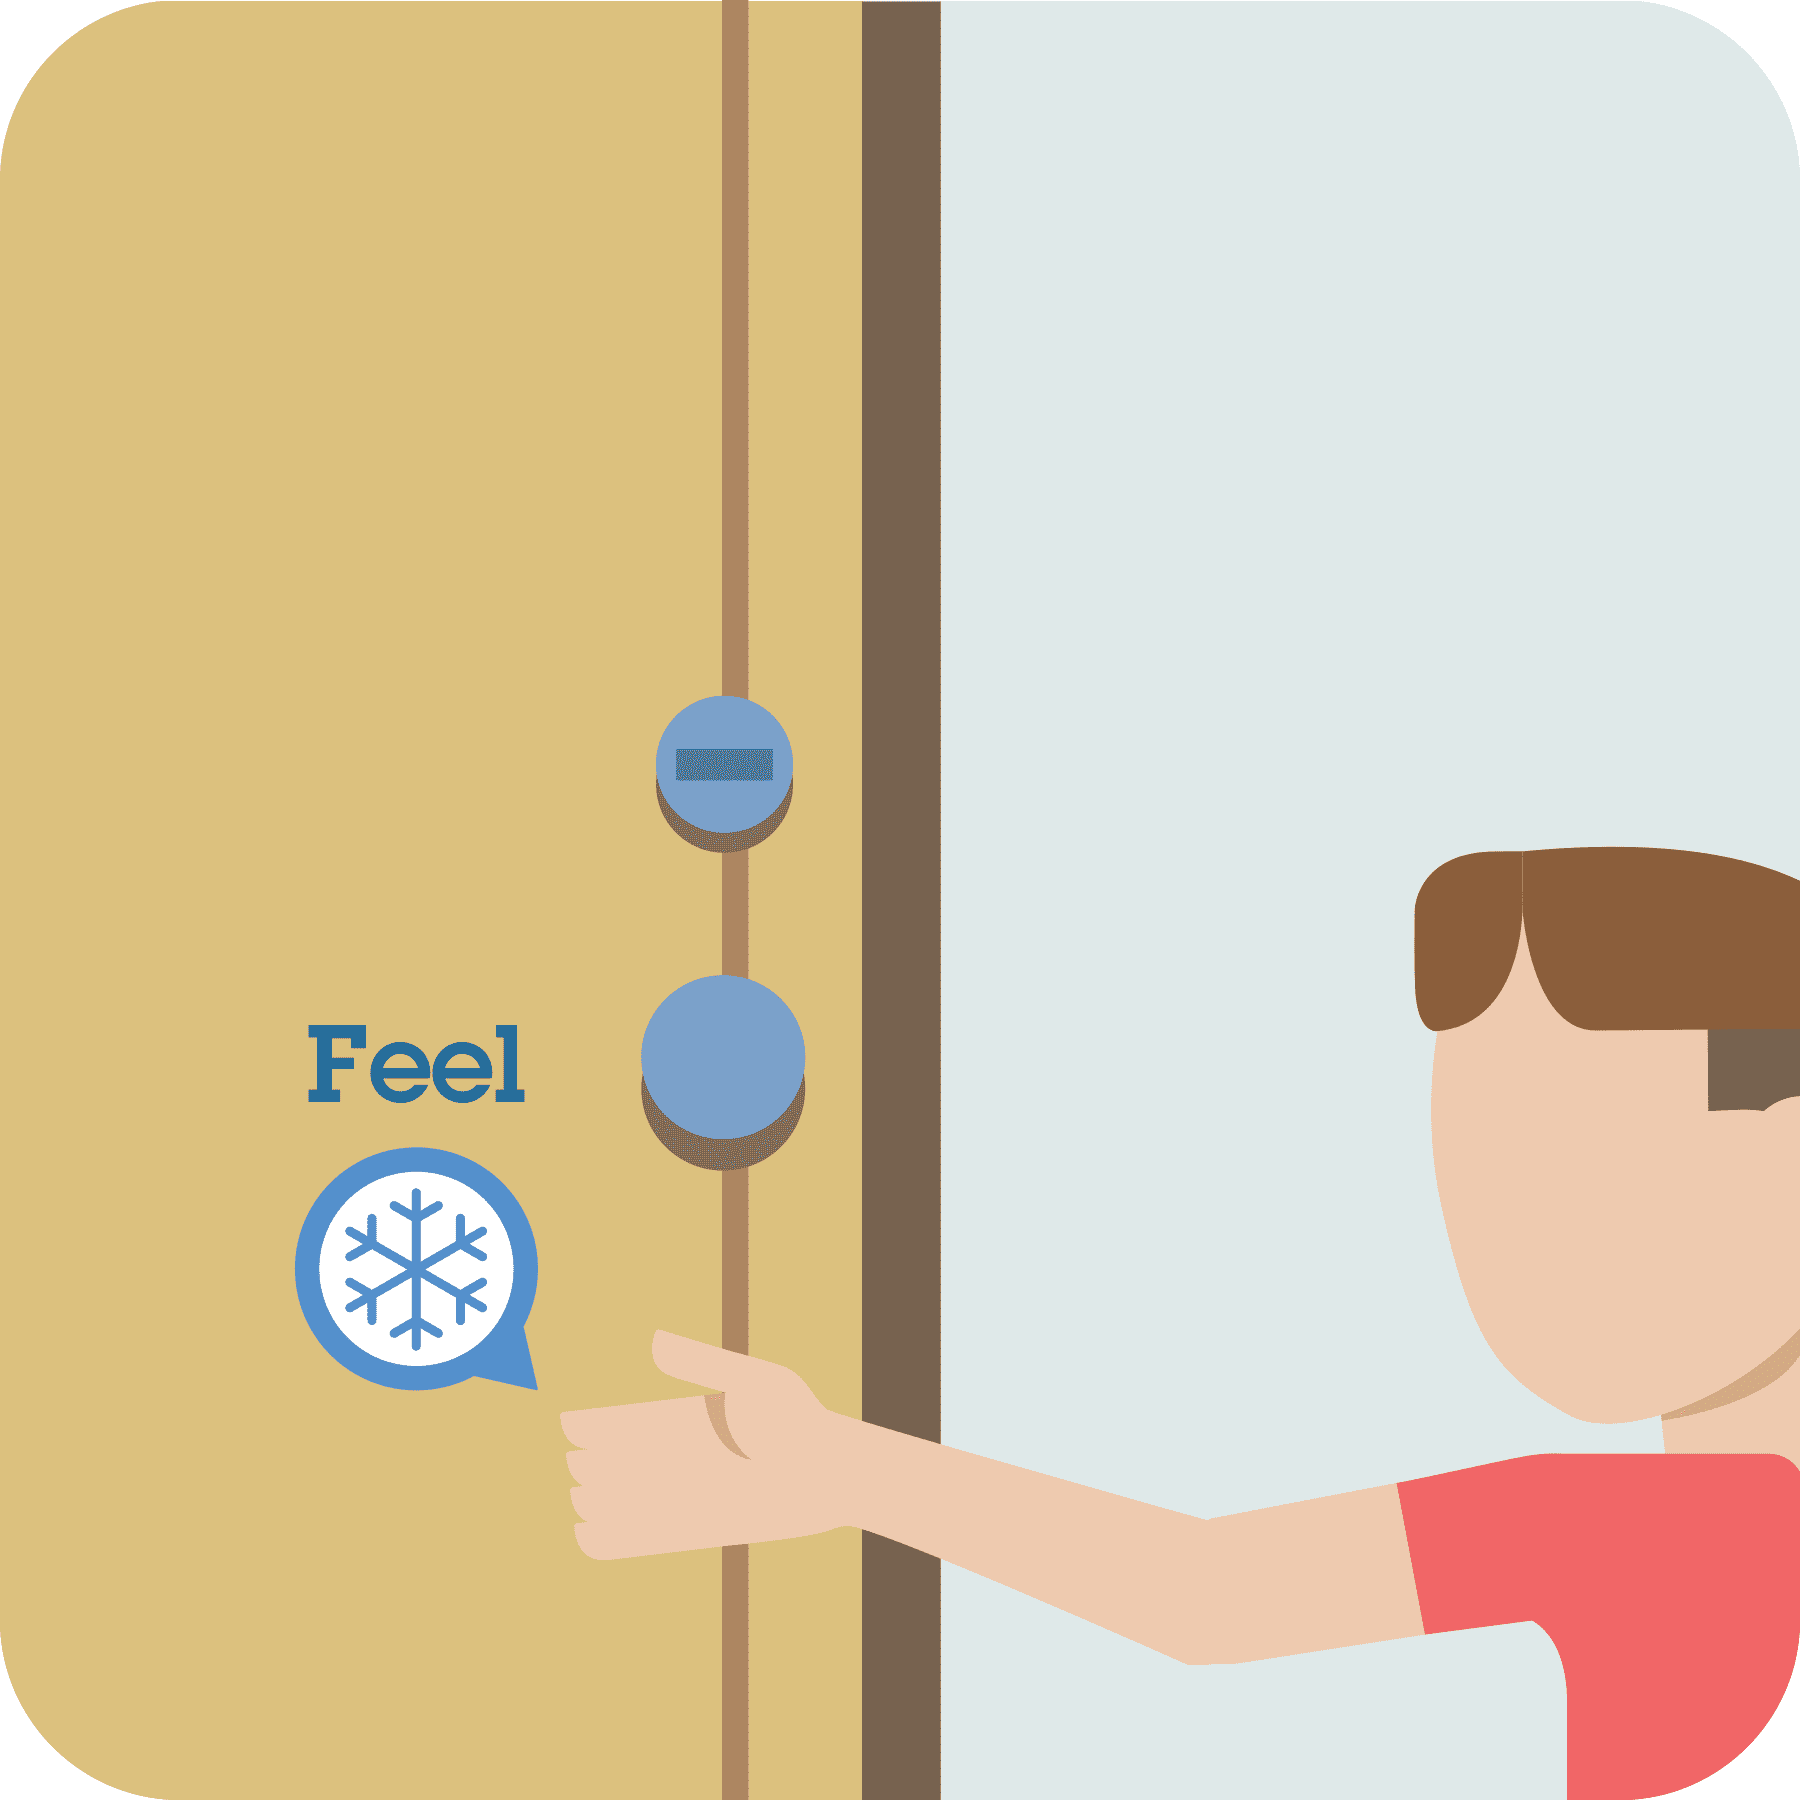 Boy feels the door with his hand. Feel prompt with snowflake to show it is cool.